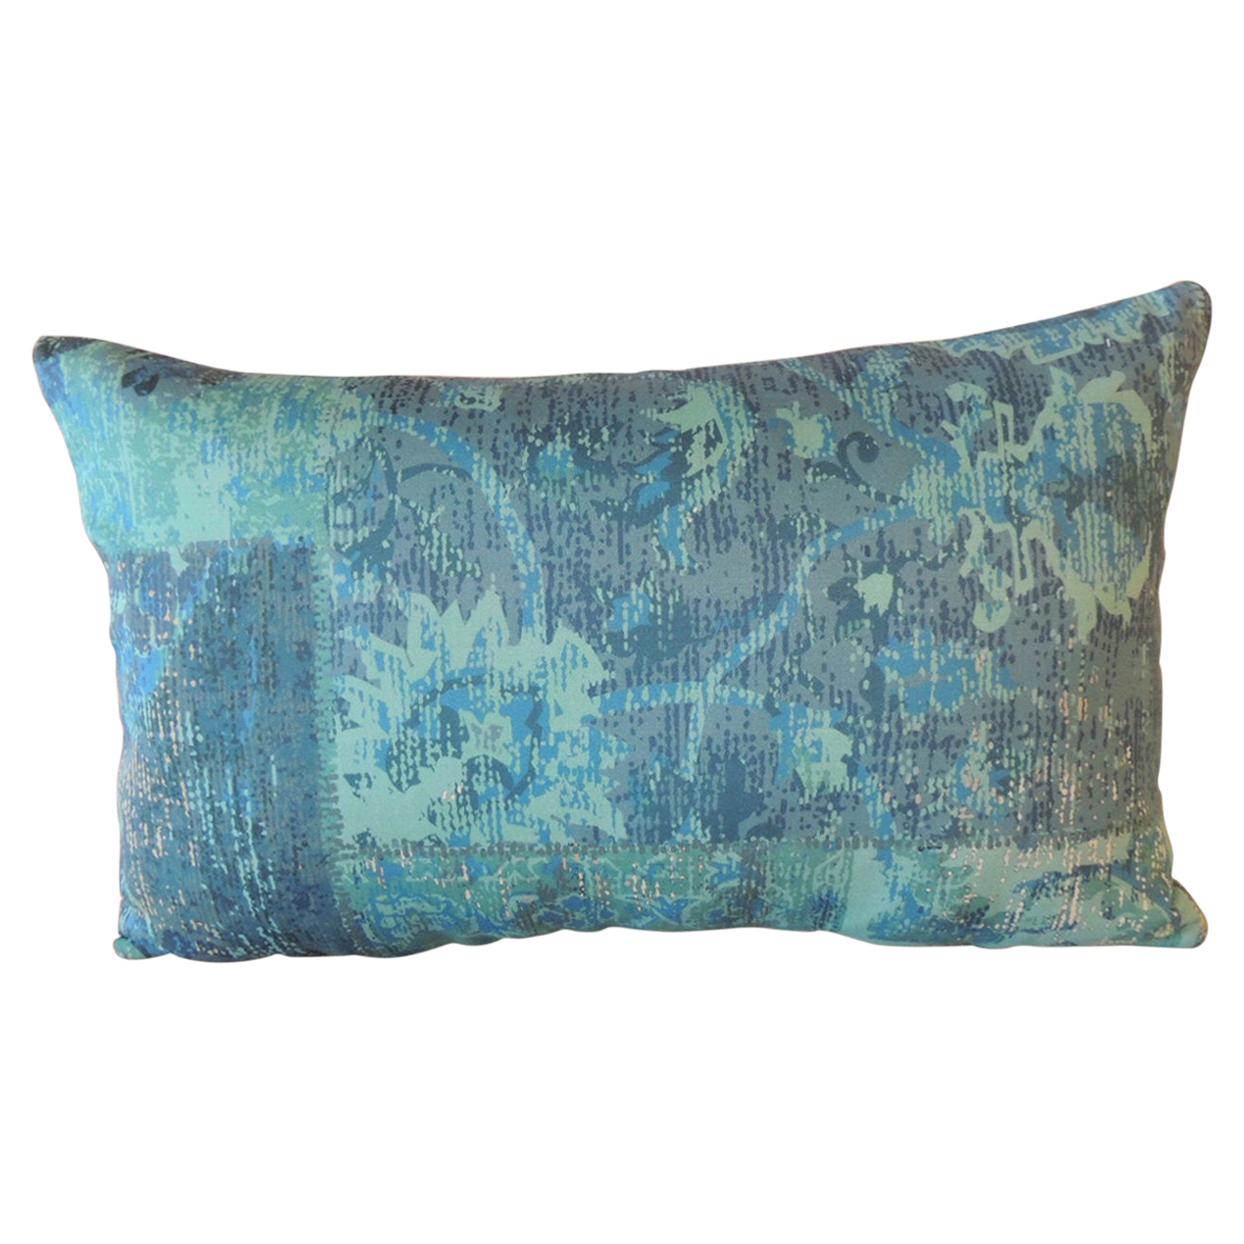 Aqua and Blue Satin Cotton Modern Lumbar Decorative Pillow